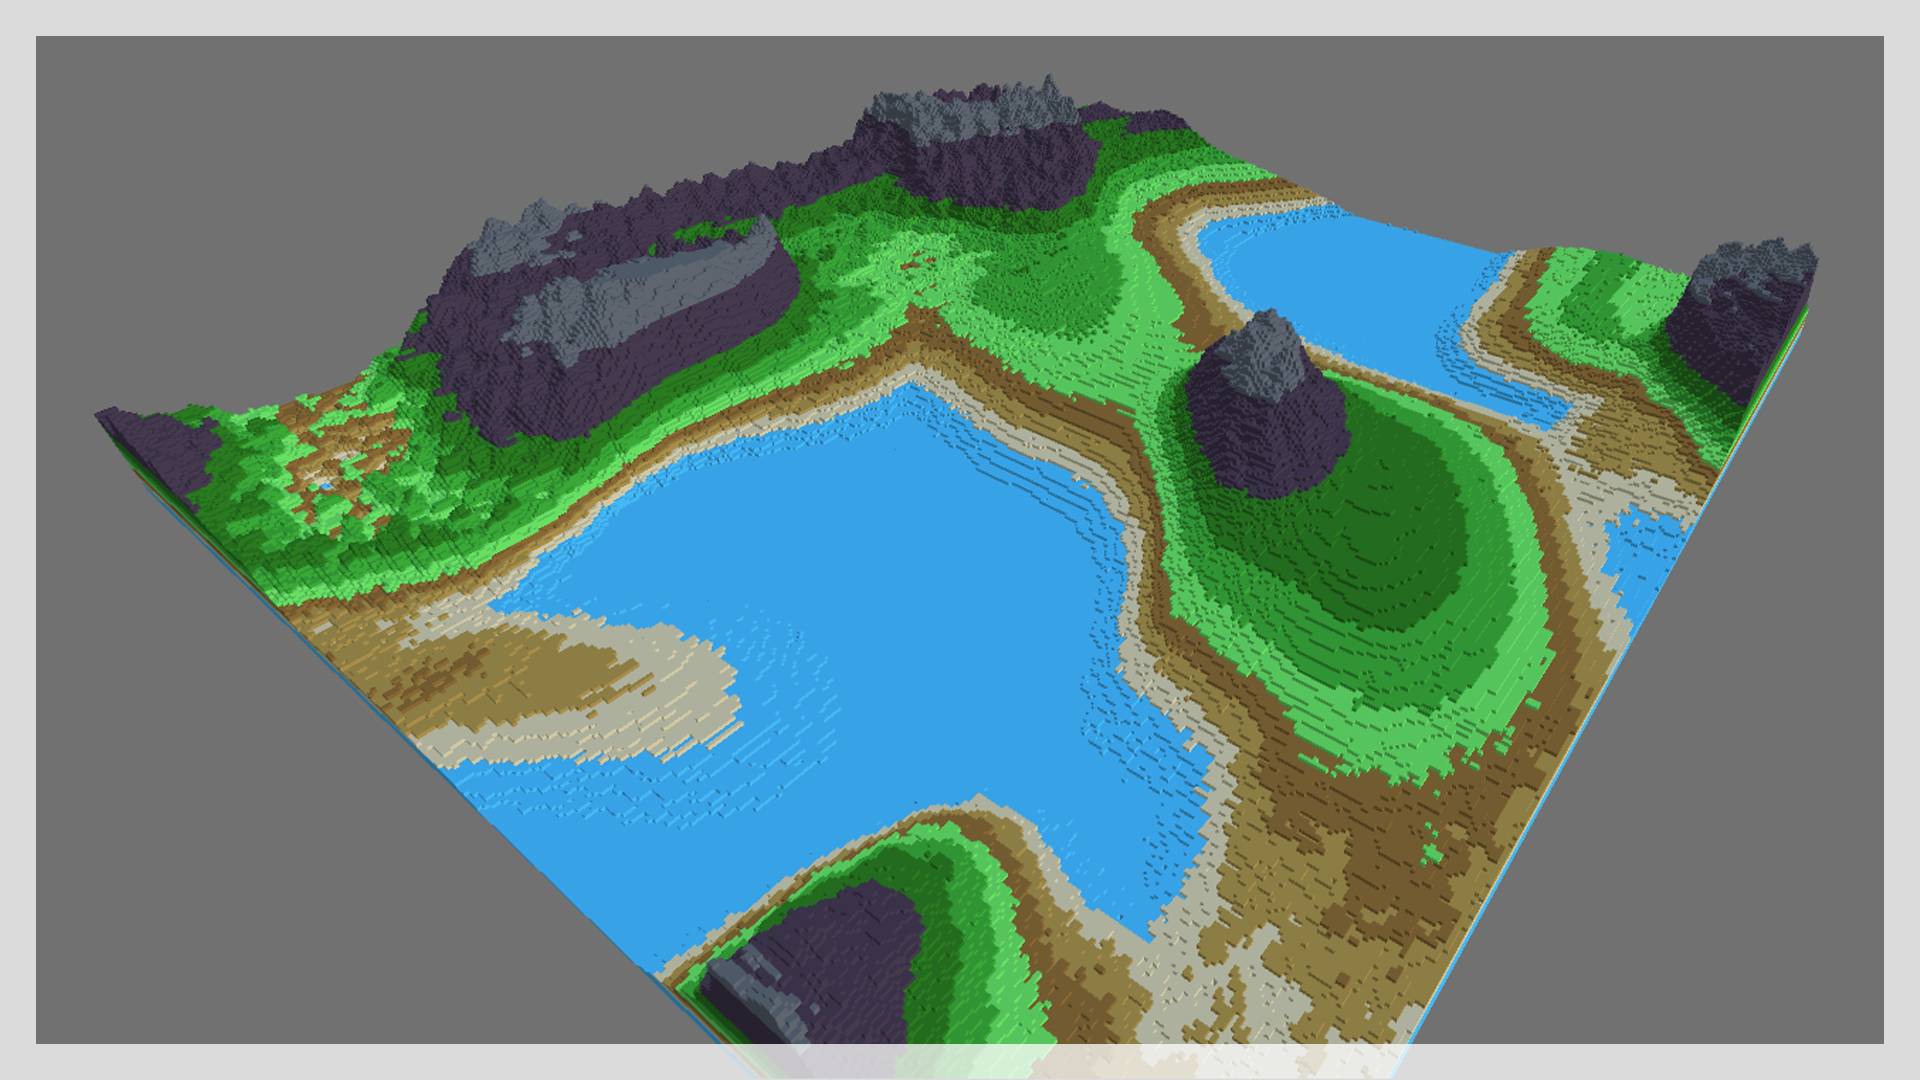 Unity : Layered Perlin Noise by Coding Mojo